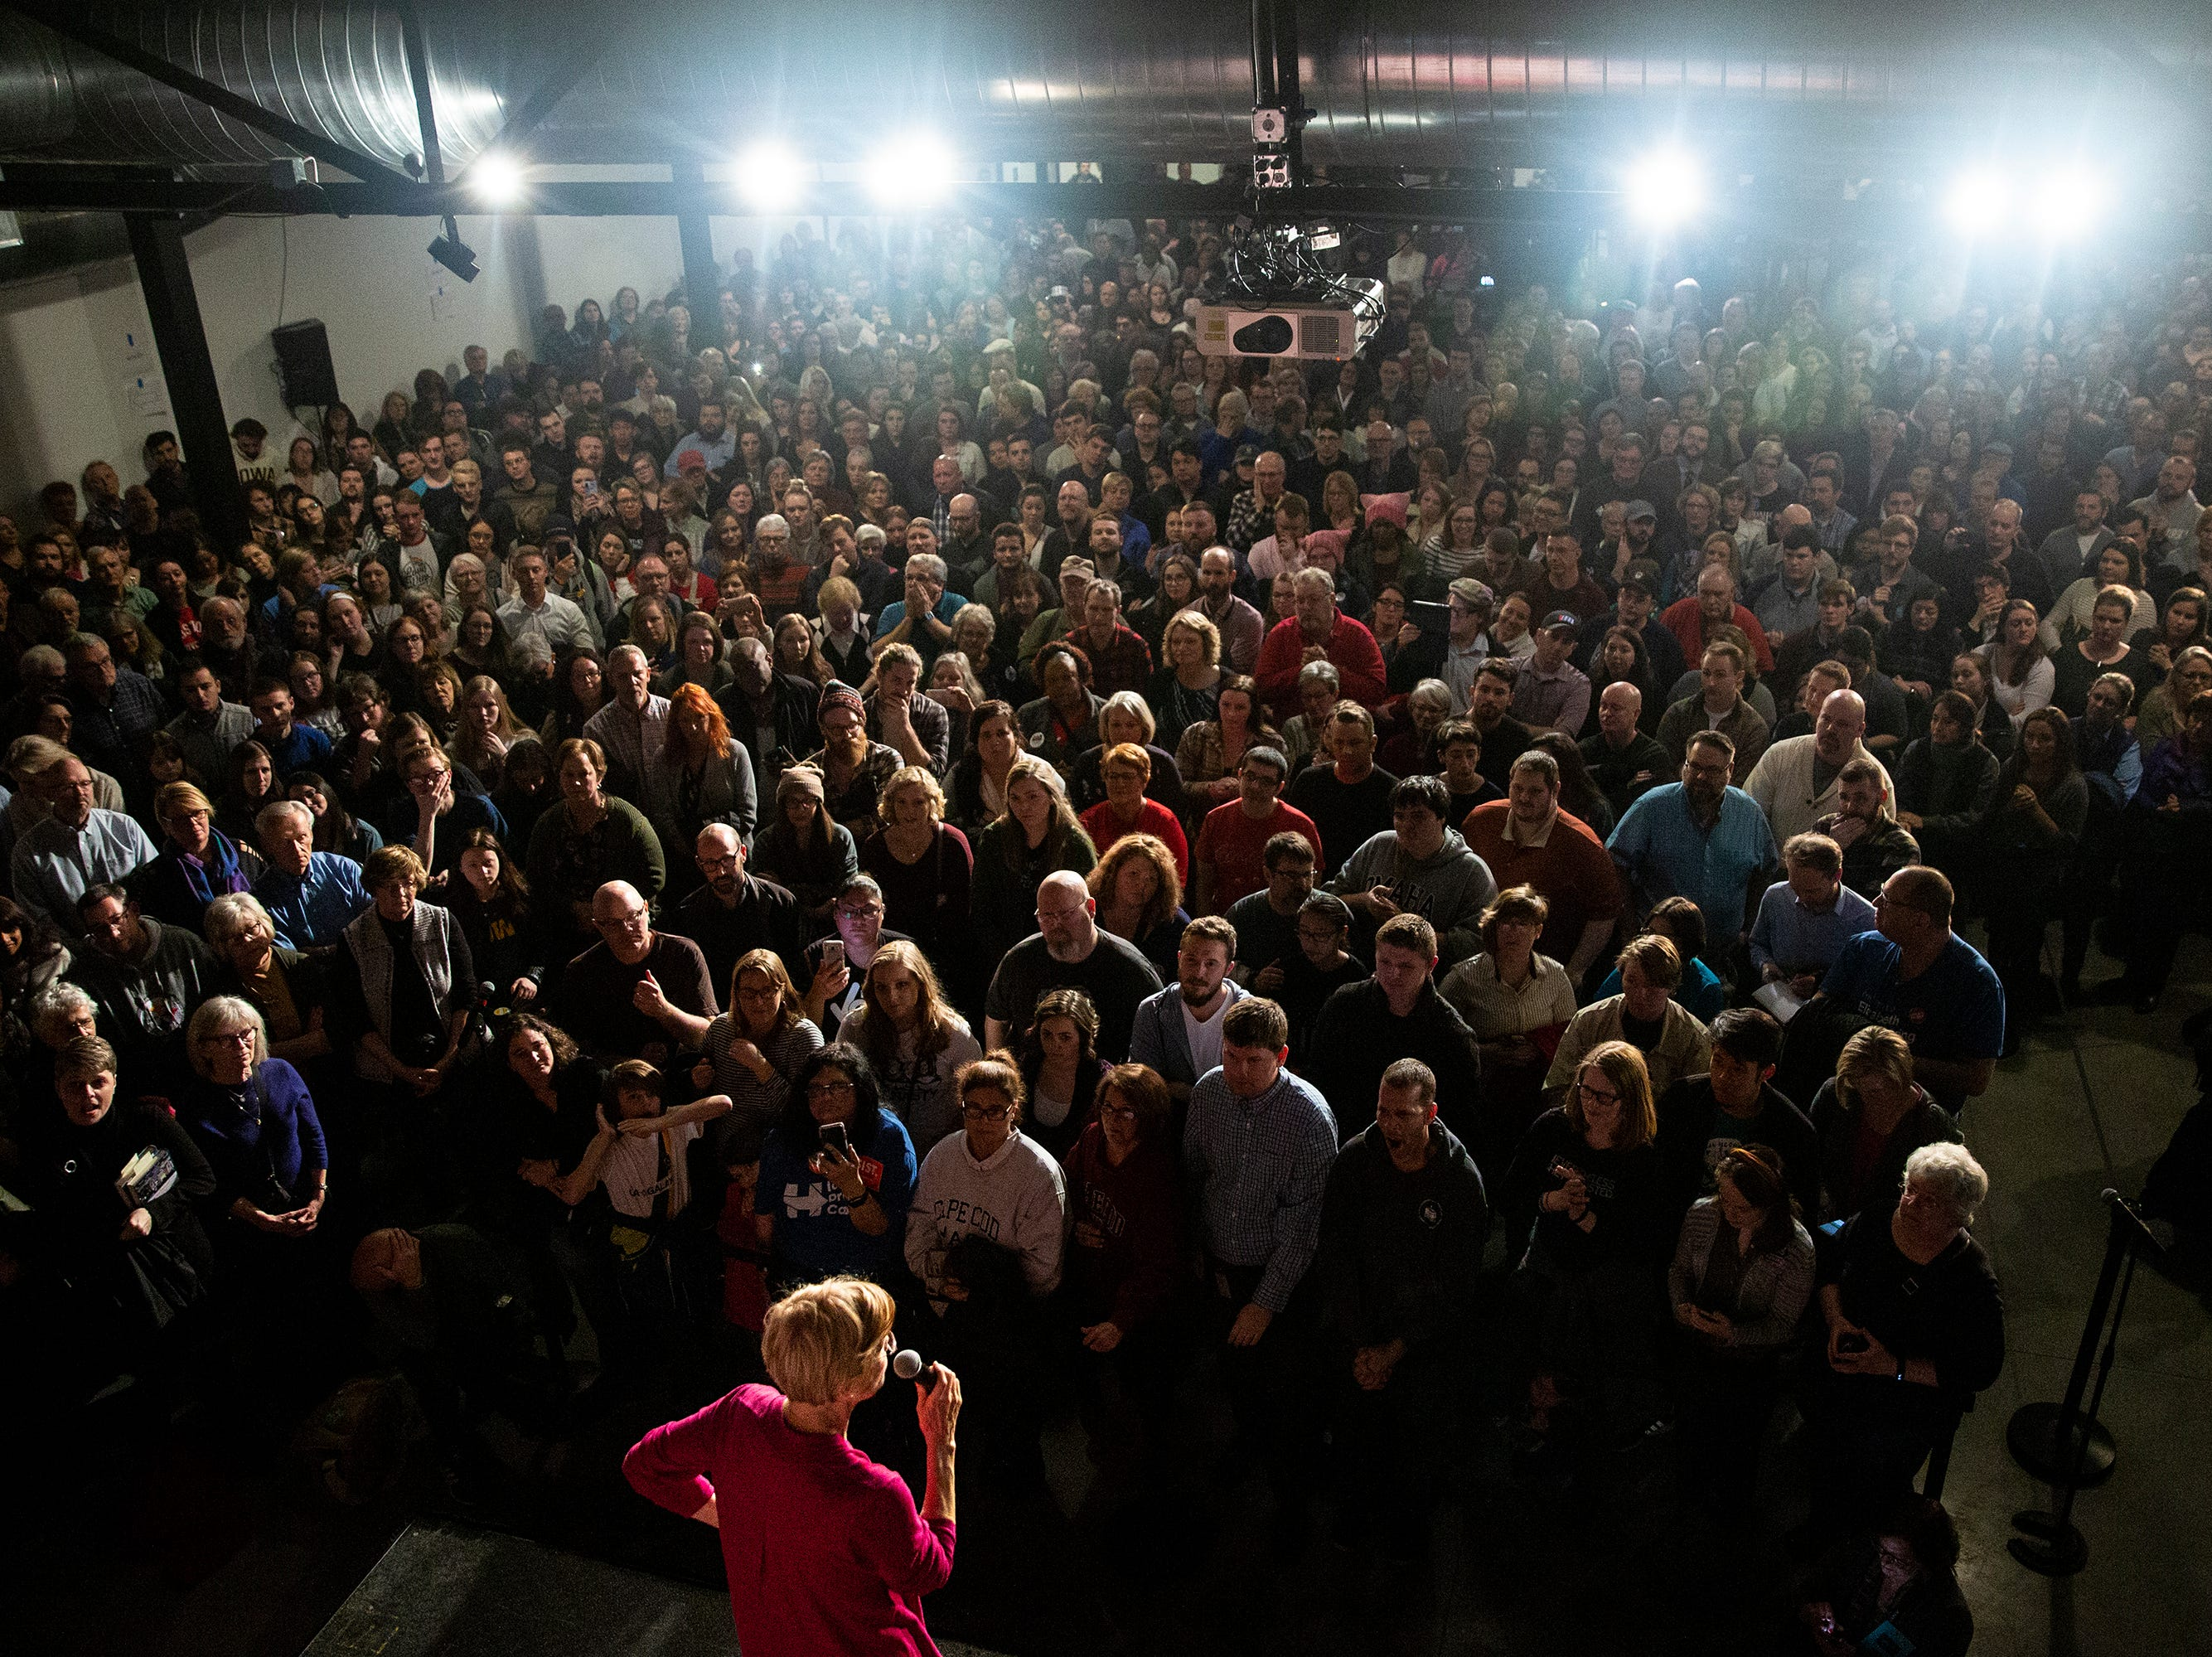 Elizabeth Warren, a senator from Massachusetts, speaks to a crowd of people on Saturday, Jan. 5, 2019, in Des Moines, just days after forming a presidential exploratory committee. This was her first trip to Iowa since 2014.